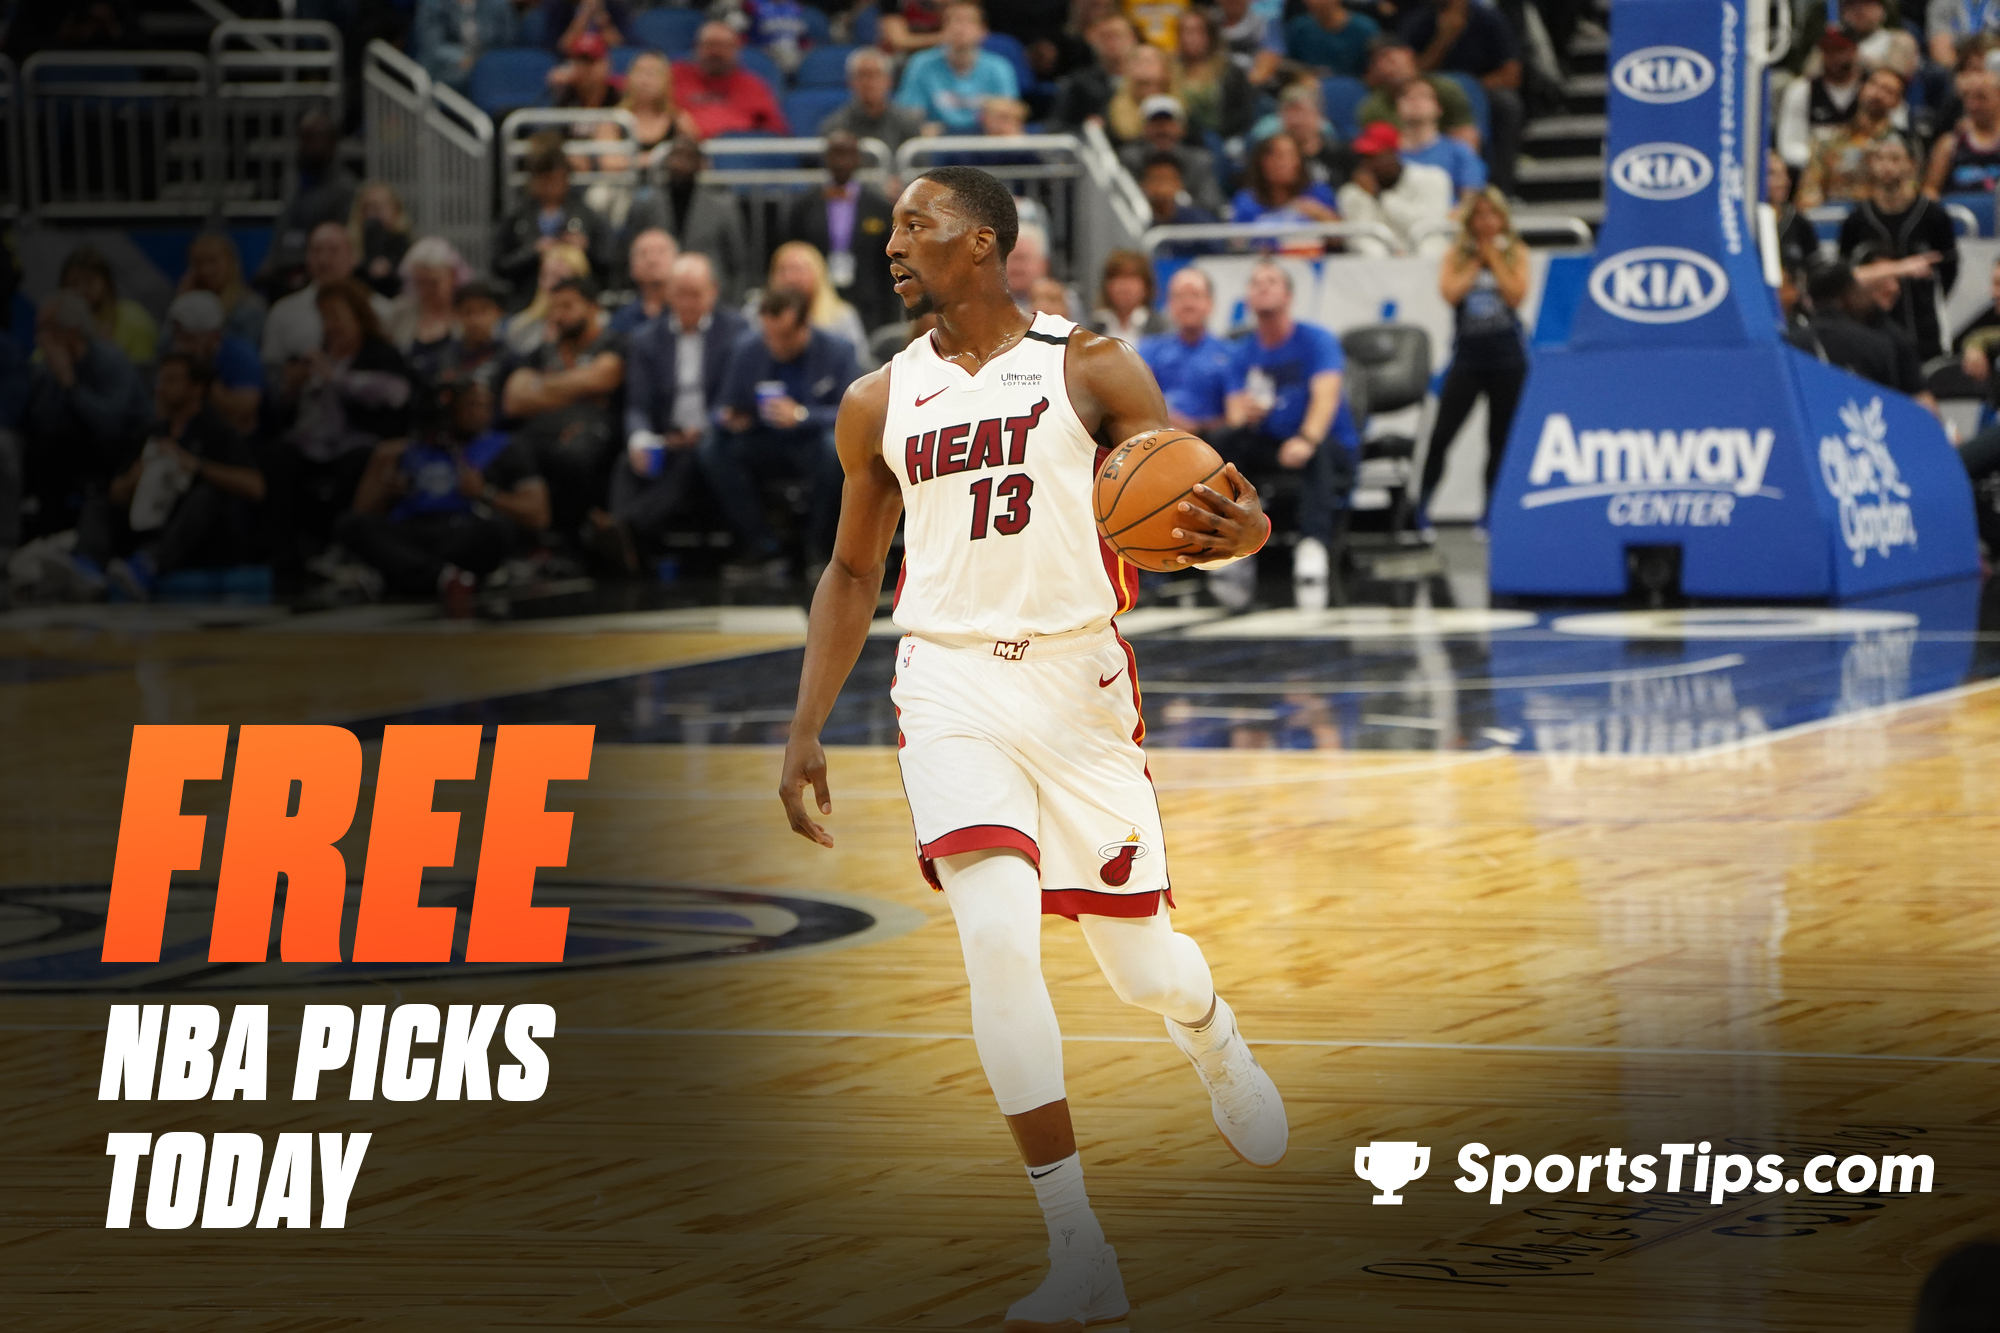 Free NBA Picks Today for Sunday, February 7th, 2021